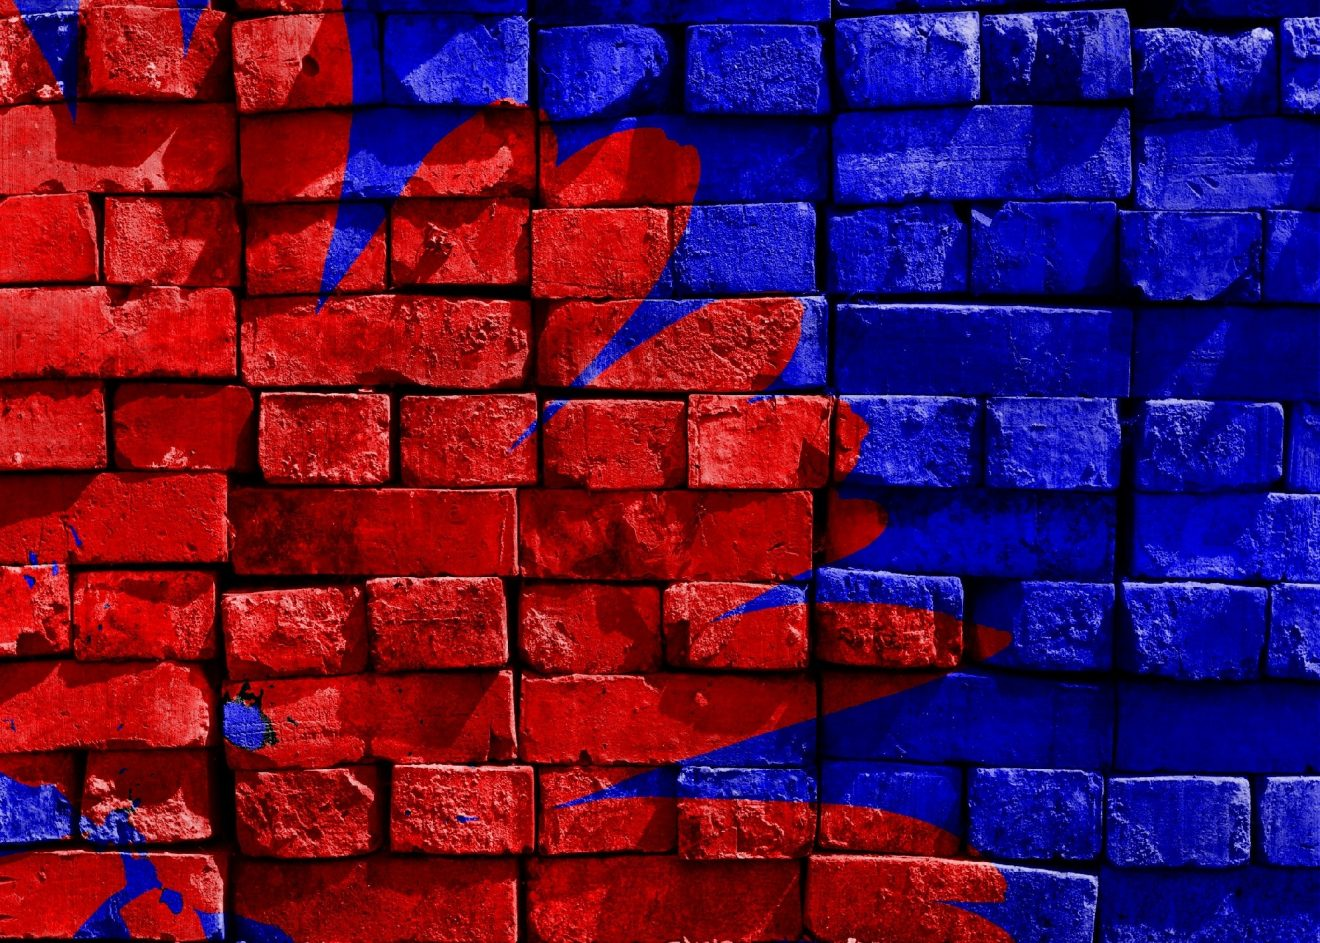 Blue and red brick